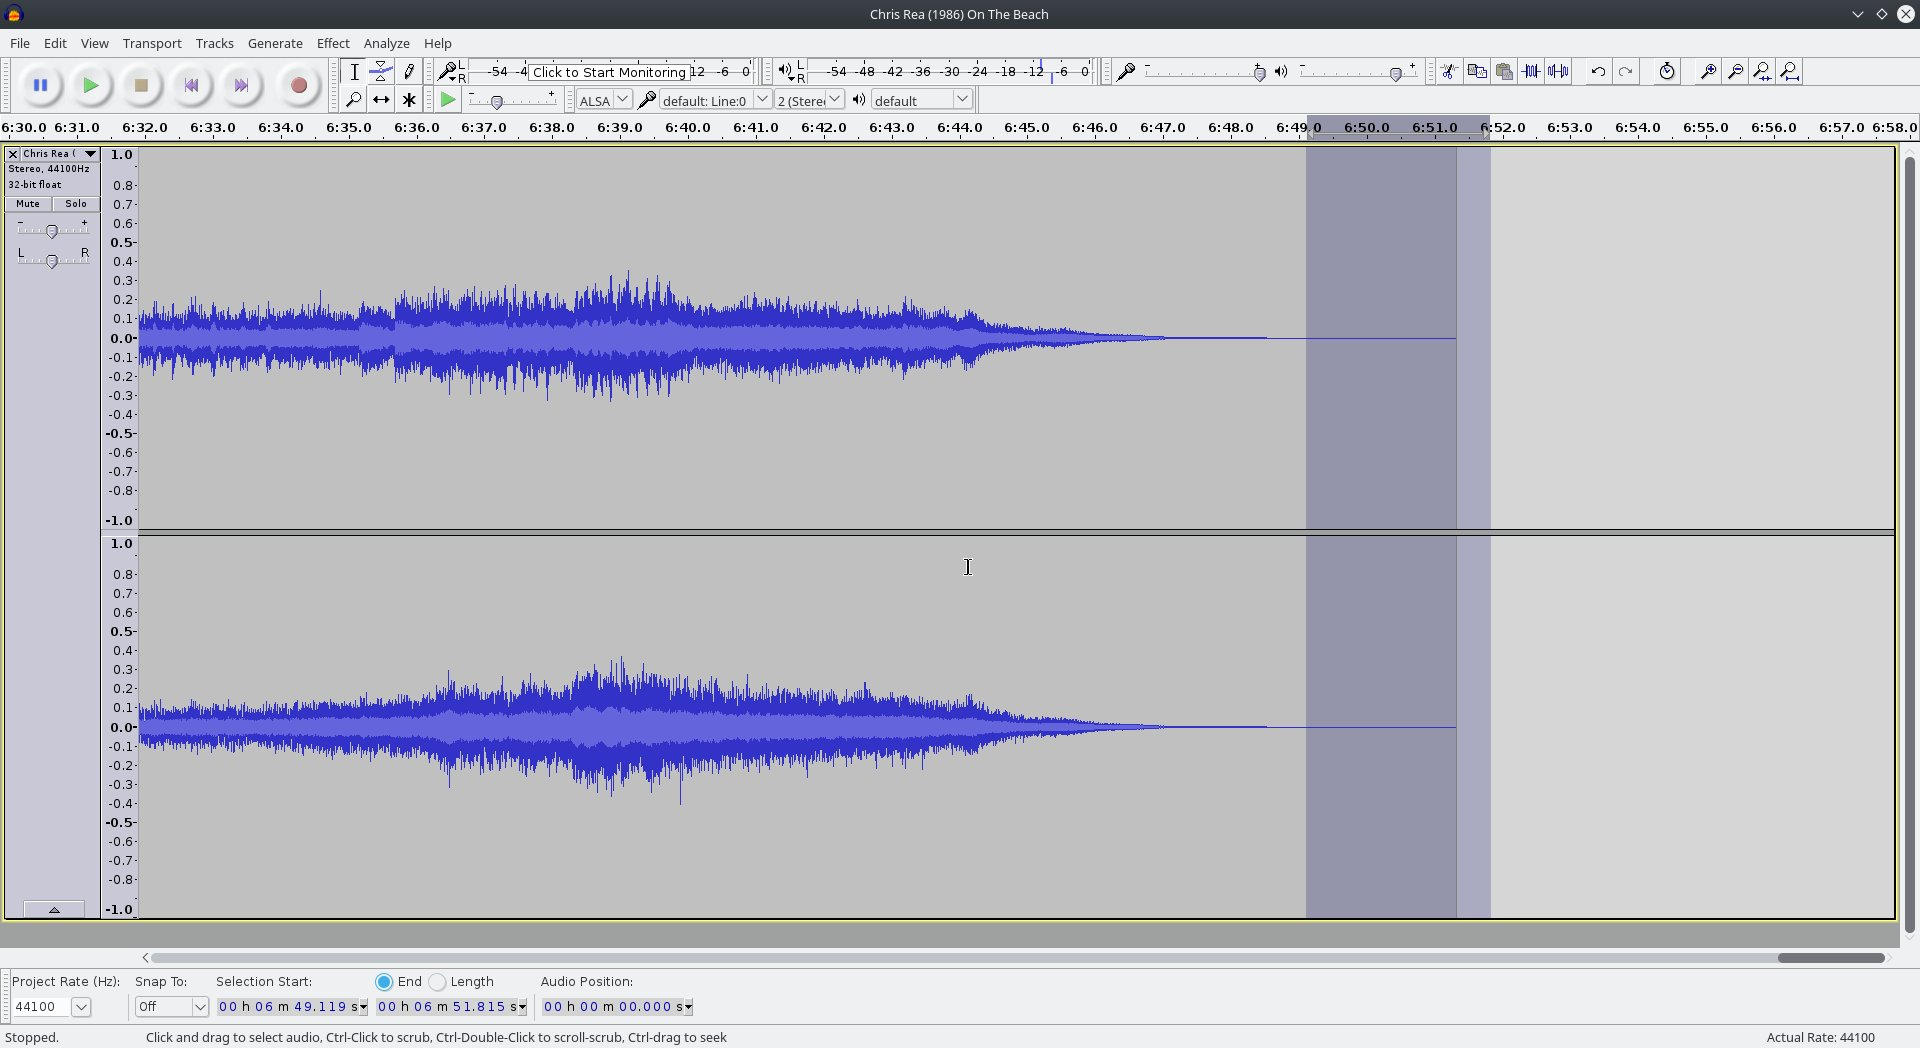 How to prepare tracks for music playlists (Editing Audio